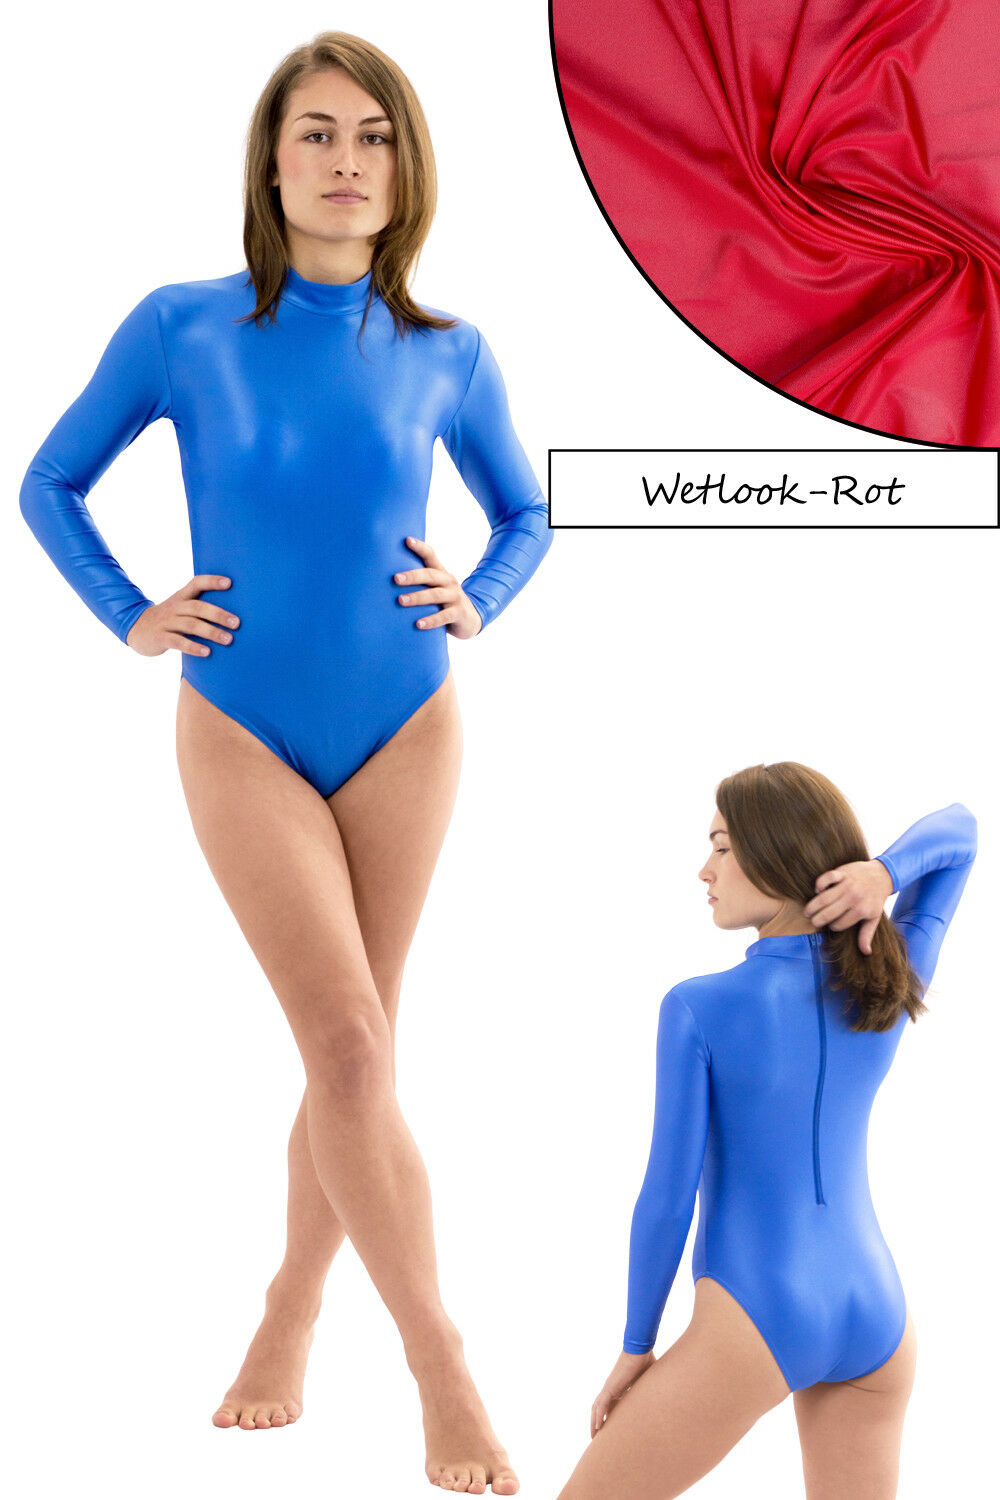 Damen Wetlook Body starker RRV lange Ärmel starker Body Glanz stretch shiny Hauteng S bis XL c7e2cd